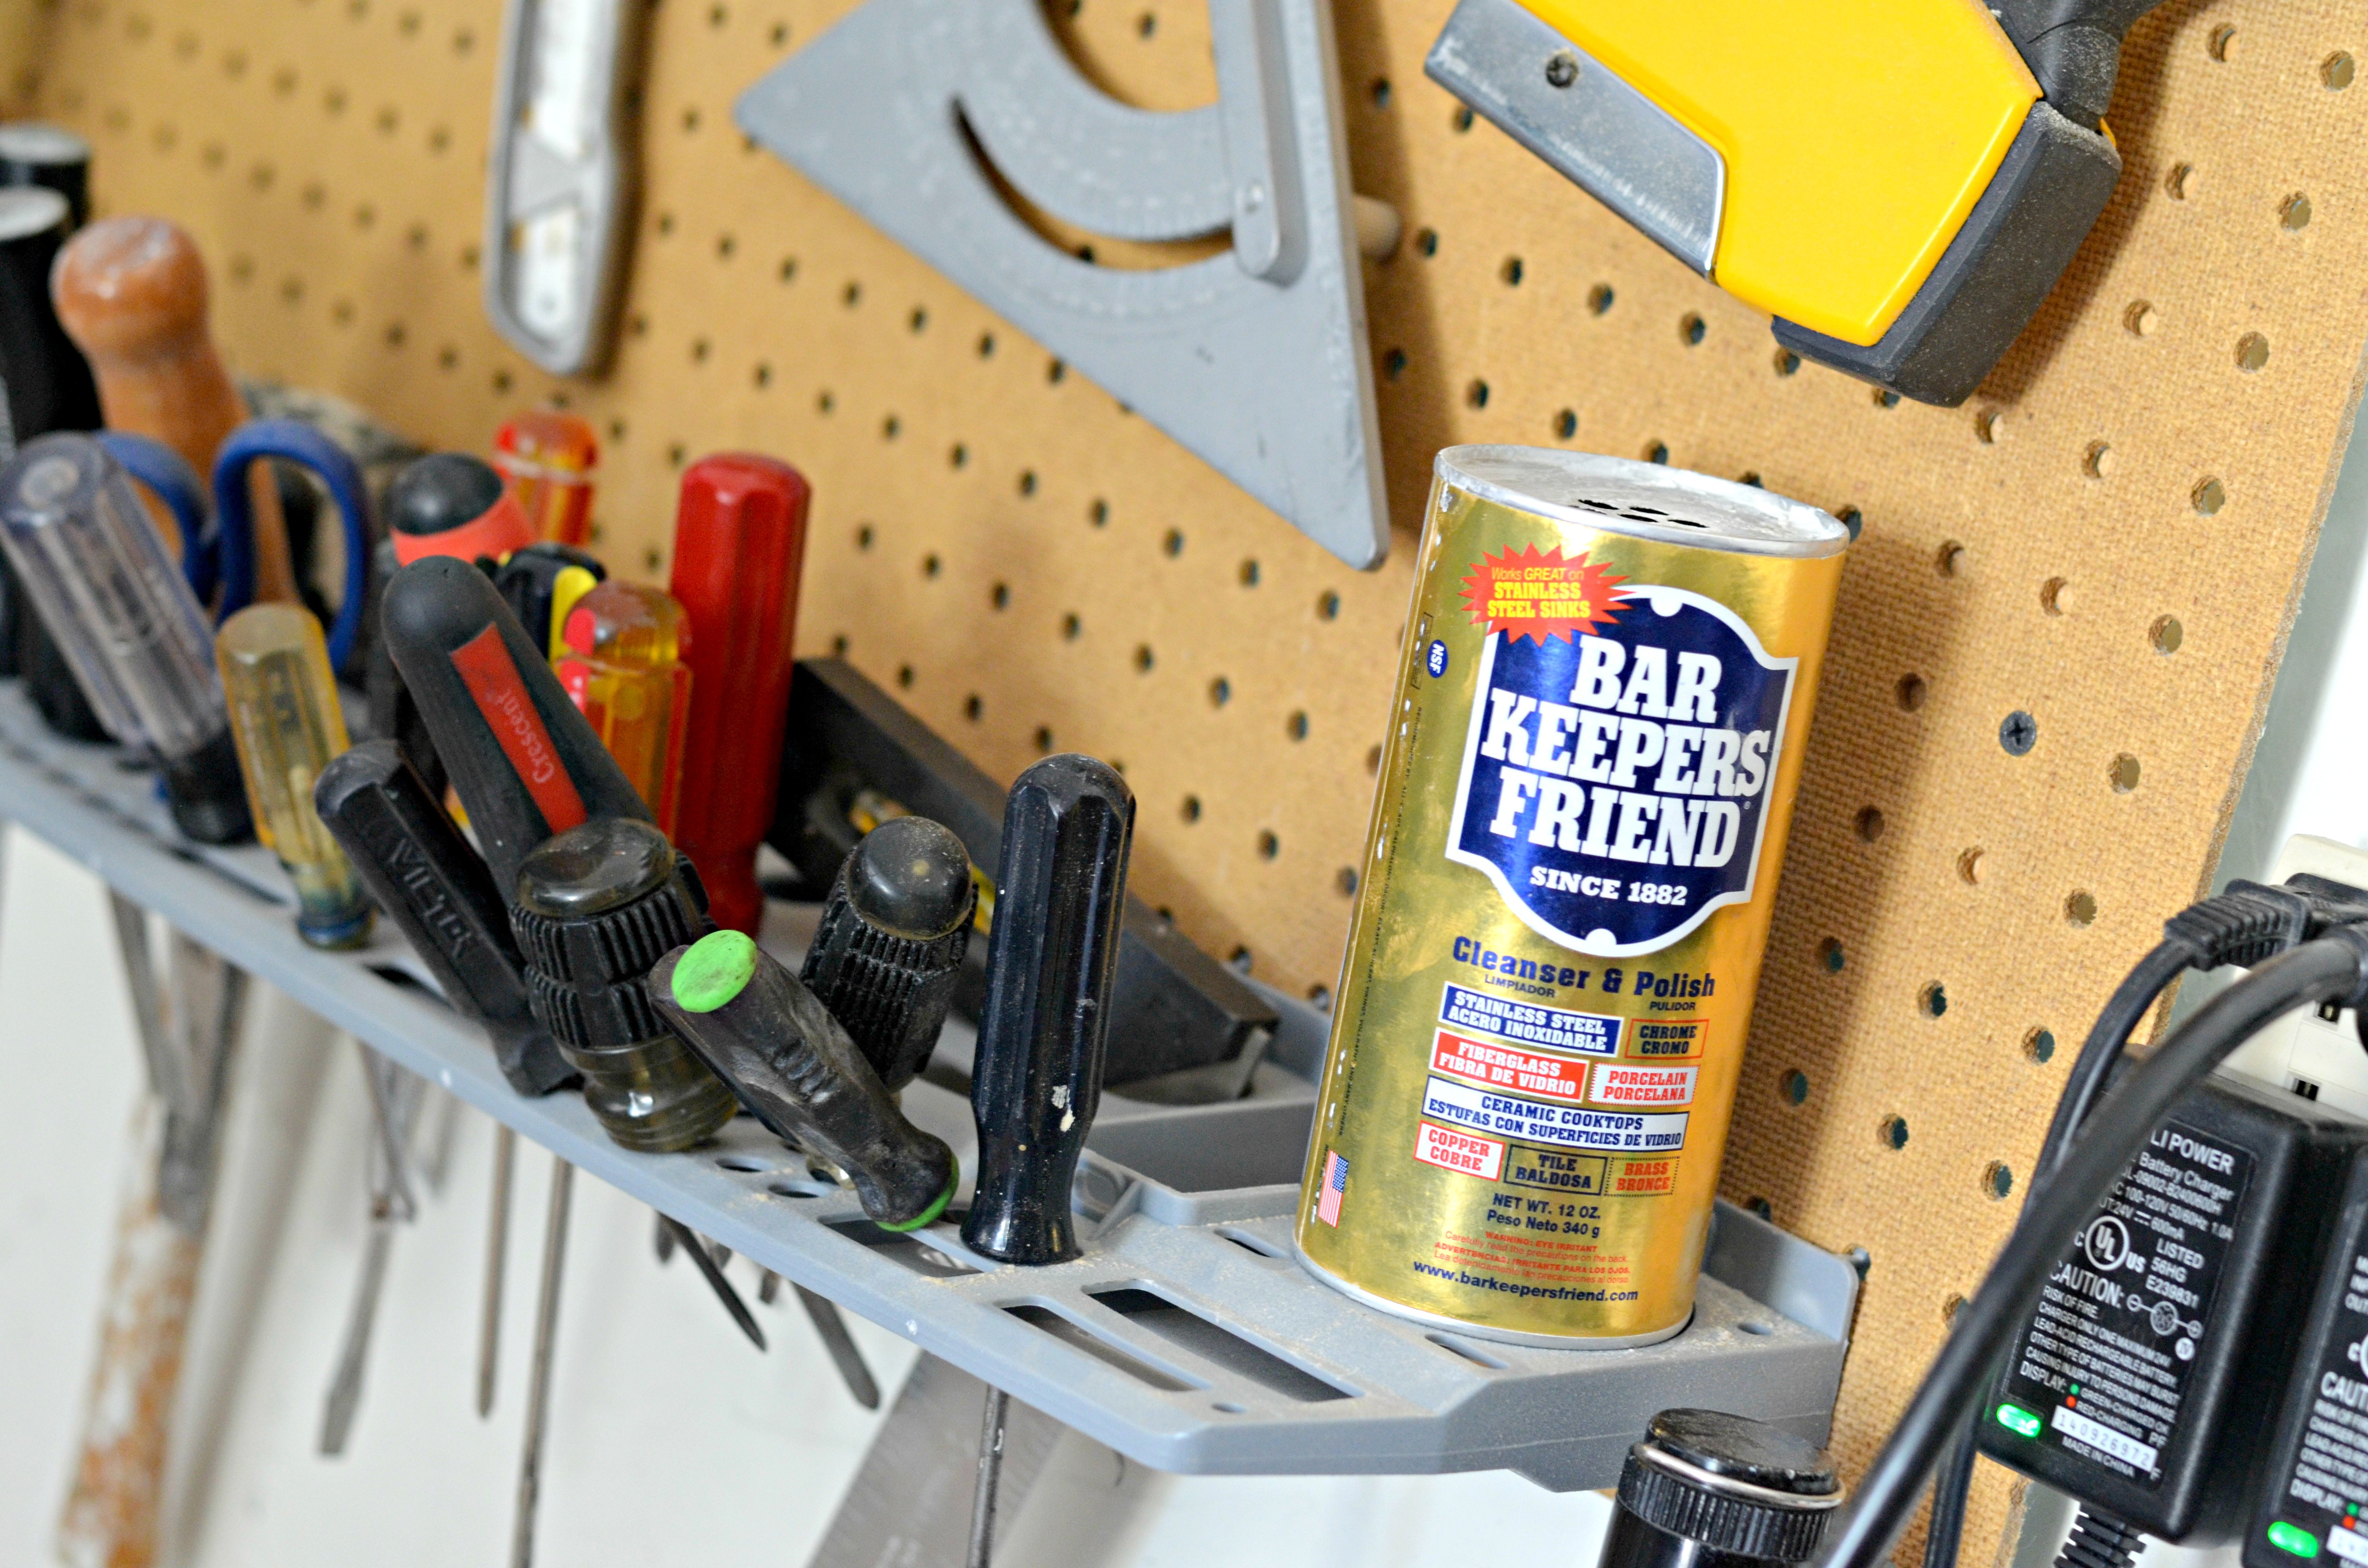 Bar Keepers Friend in the garage